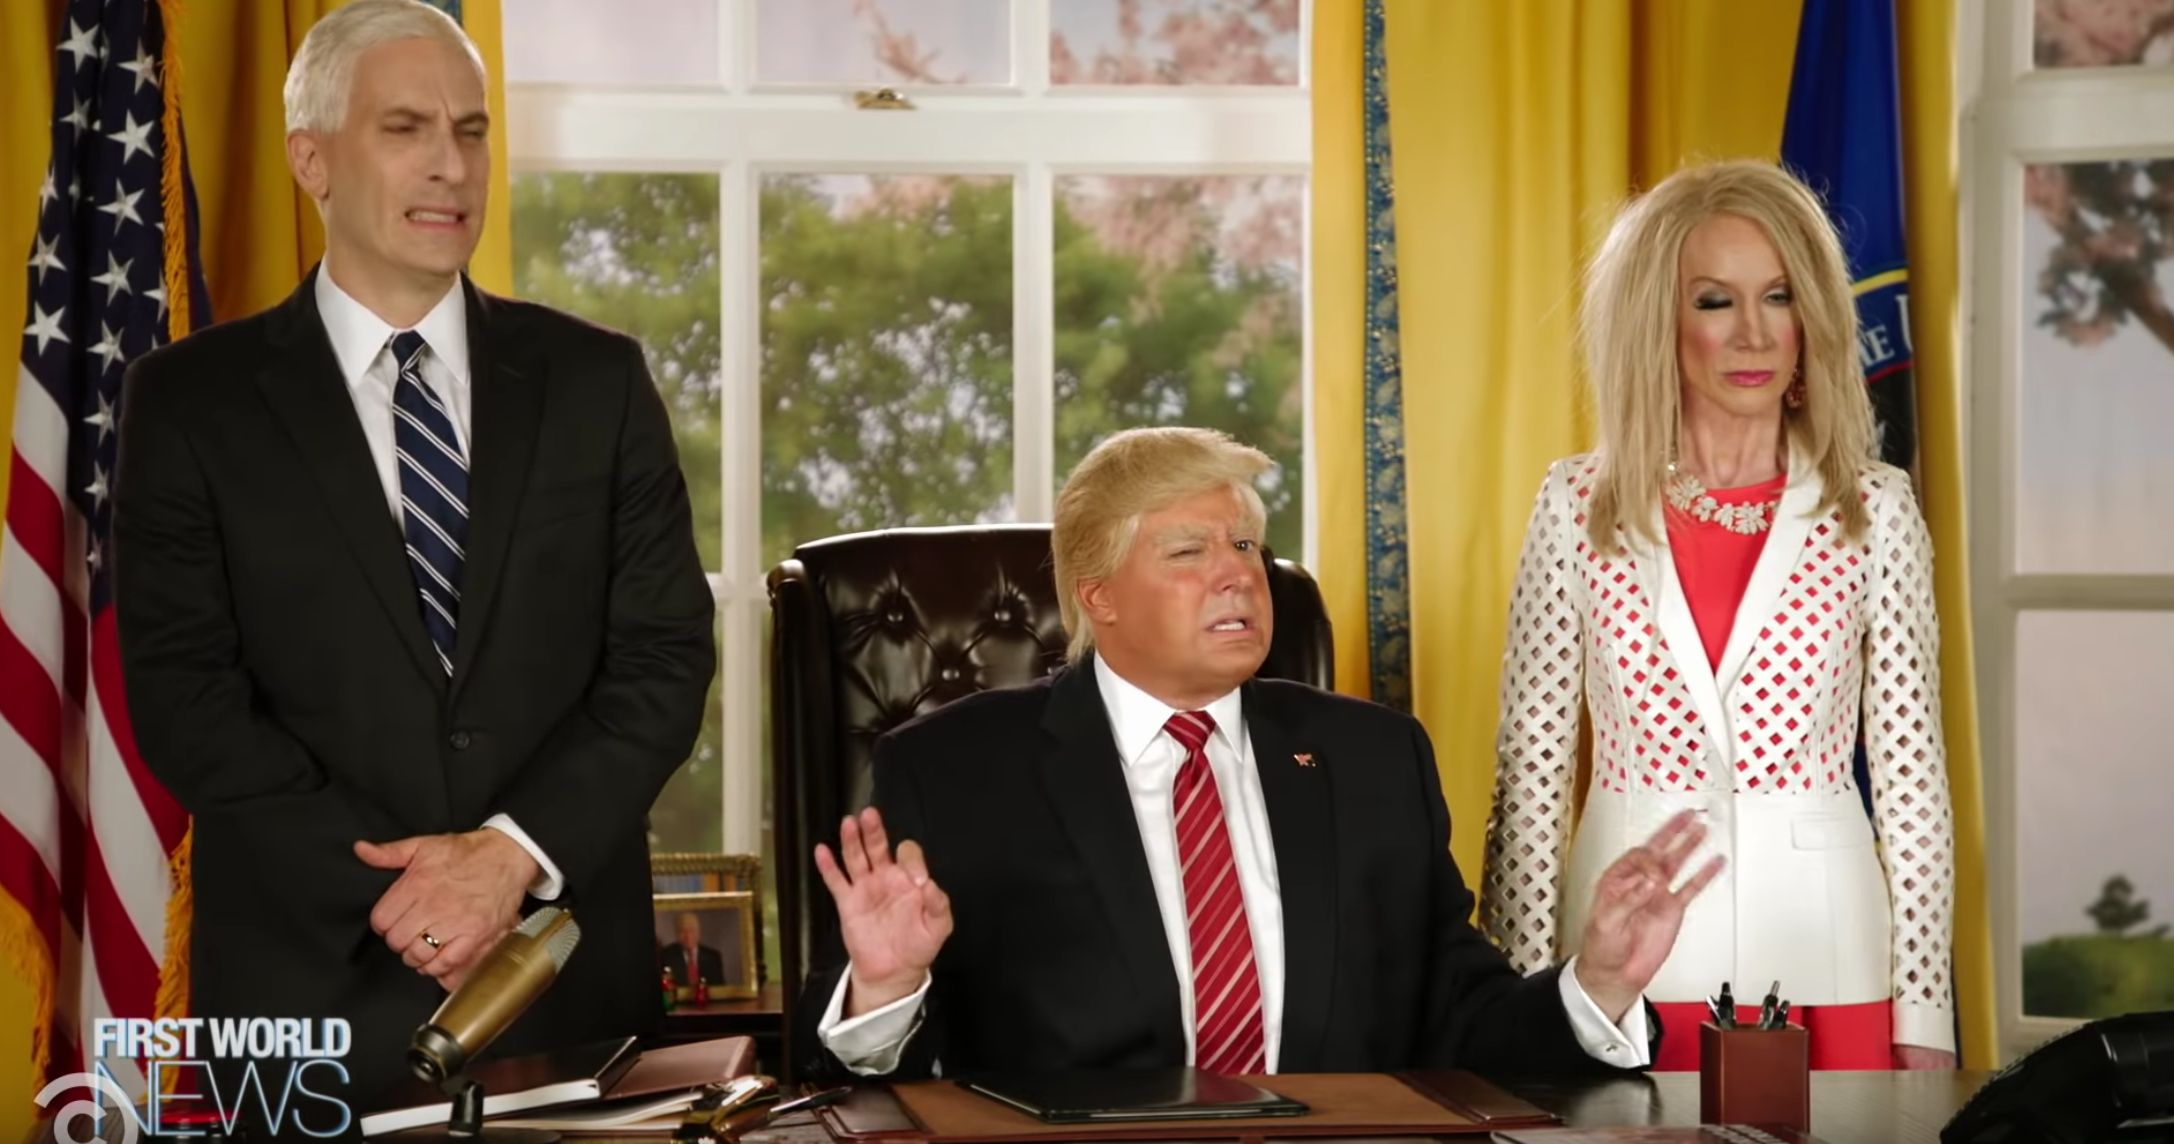 """The President Show"" chronicles the fall of President Trump from the year 2030."